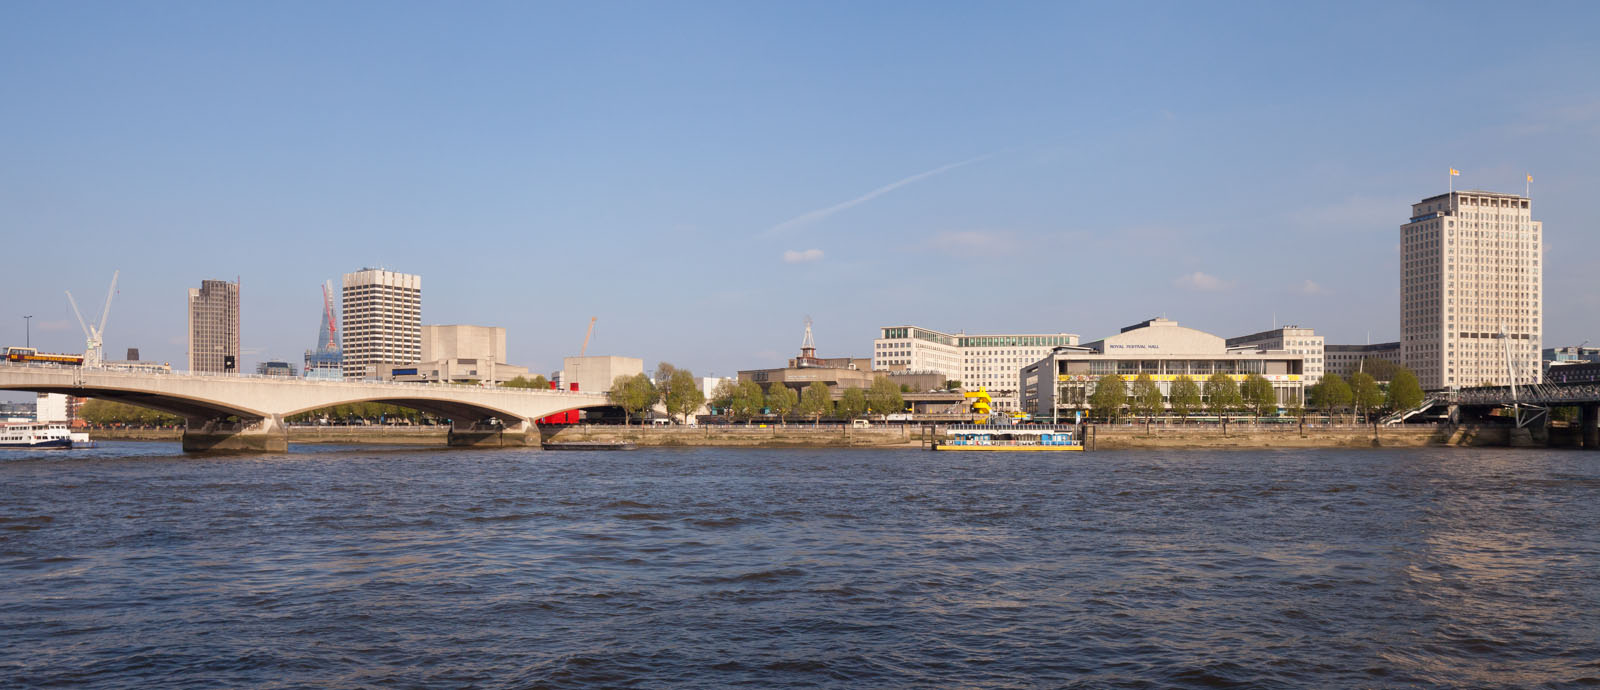 Southbank Center and Thames